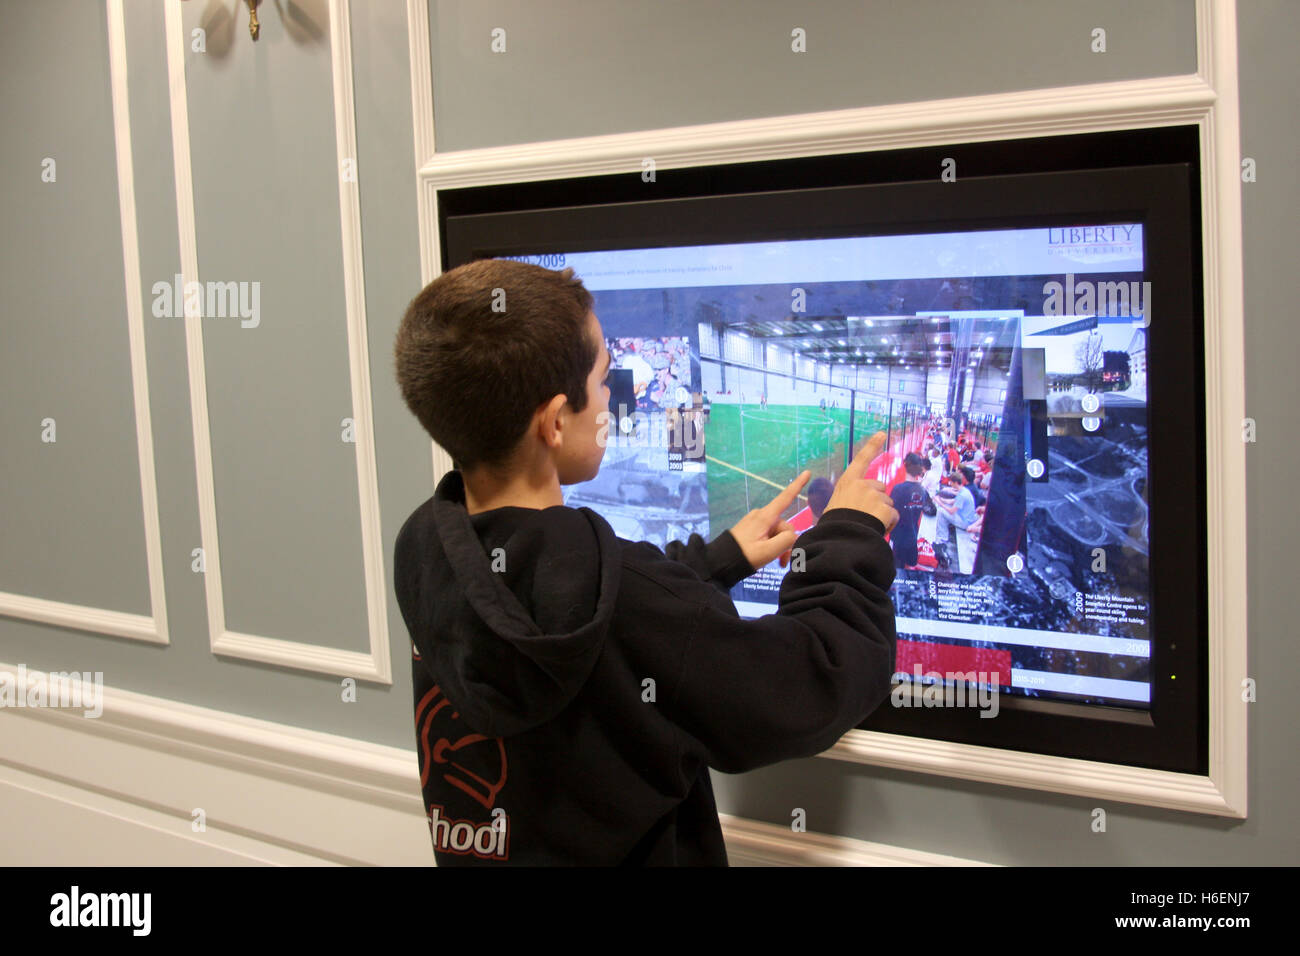 Large Touch Screen >> Young Boy Playing On A Large Touch Screen Display Inside